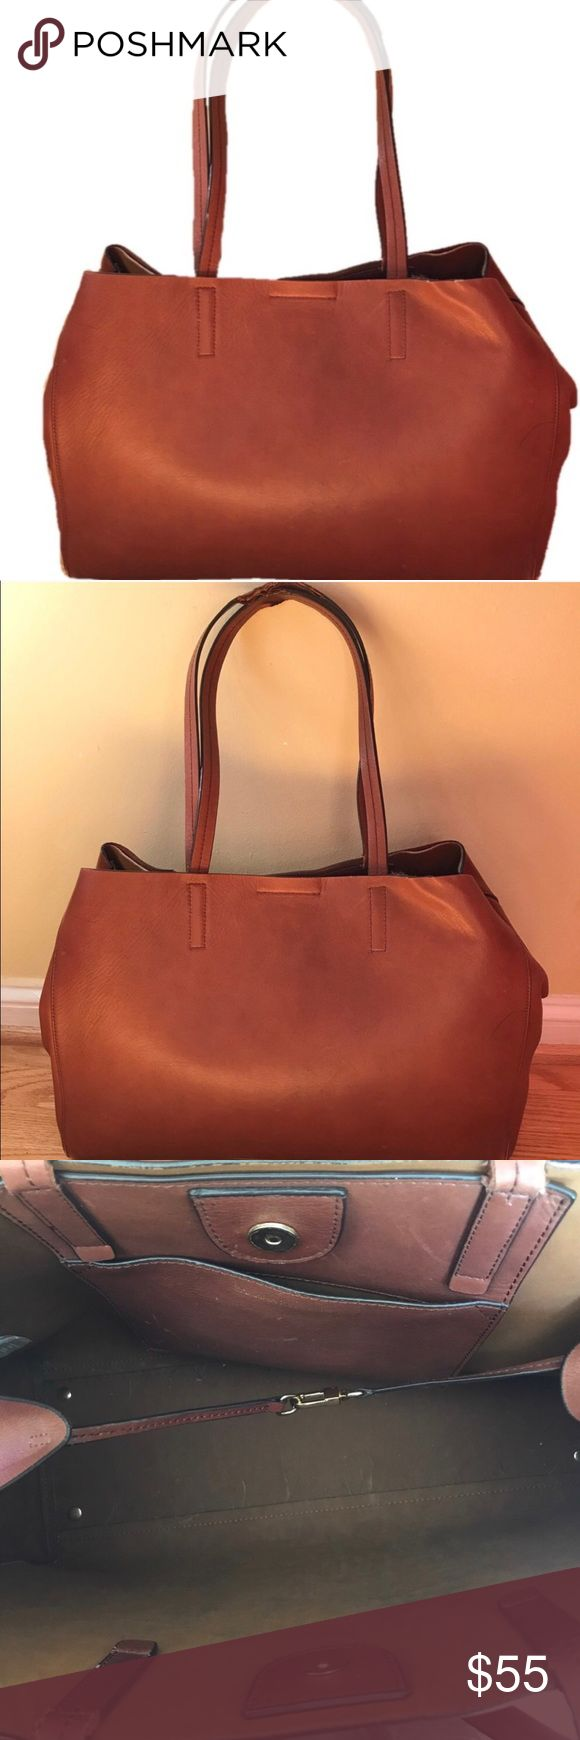 Banana Republic Leather Tote Genuine leather gorgeous tote with minor defects. Please see photos for measurements and minor defects. Can be used as a tote for work or school. Reposh. Banana Republic Bags Totes